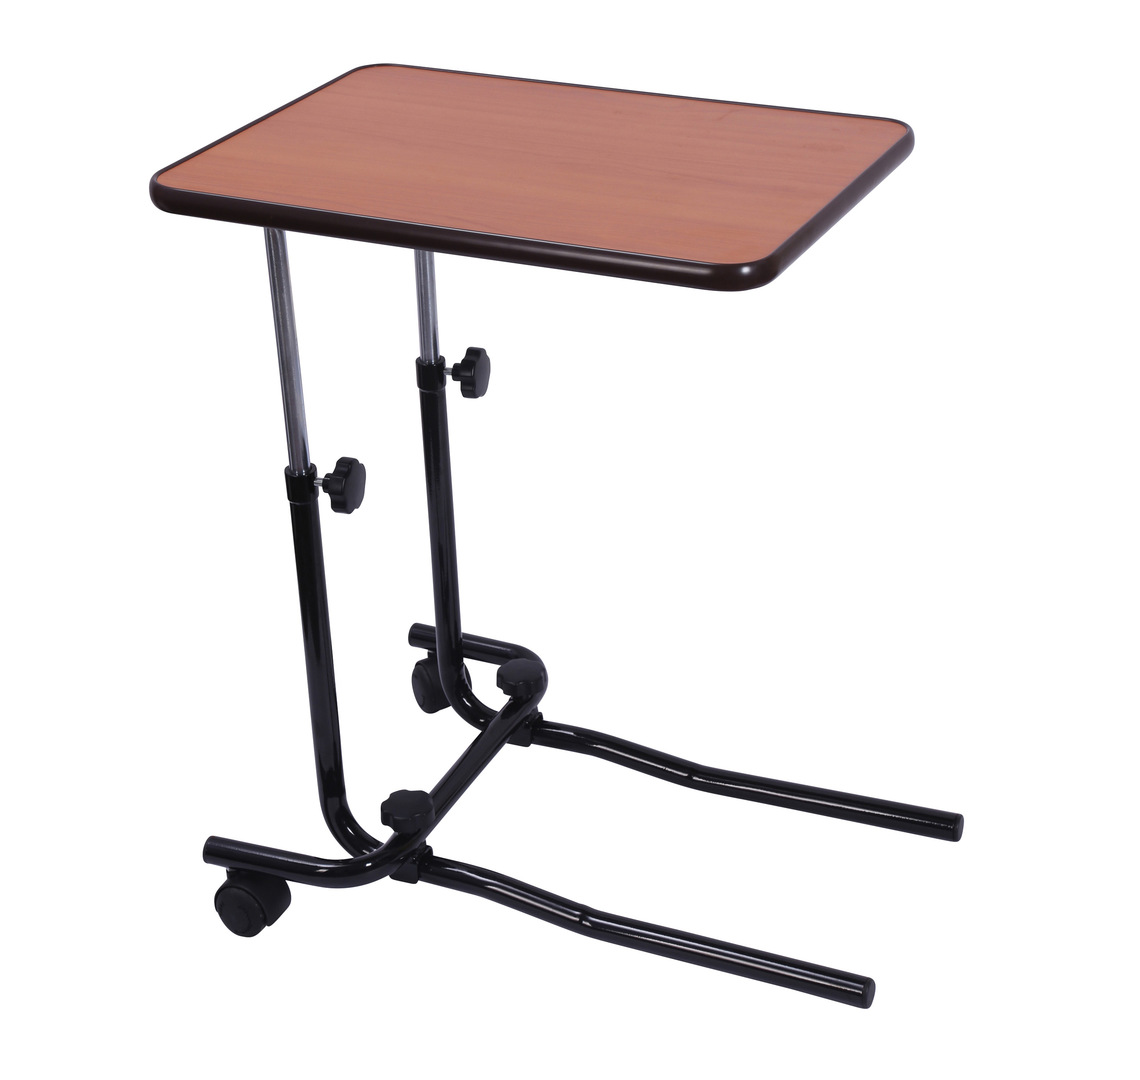 over chair tables uk best high review bed table  with castors mobility solutions